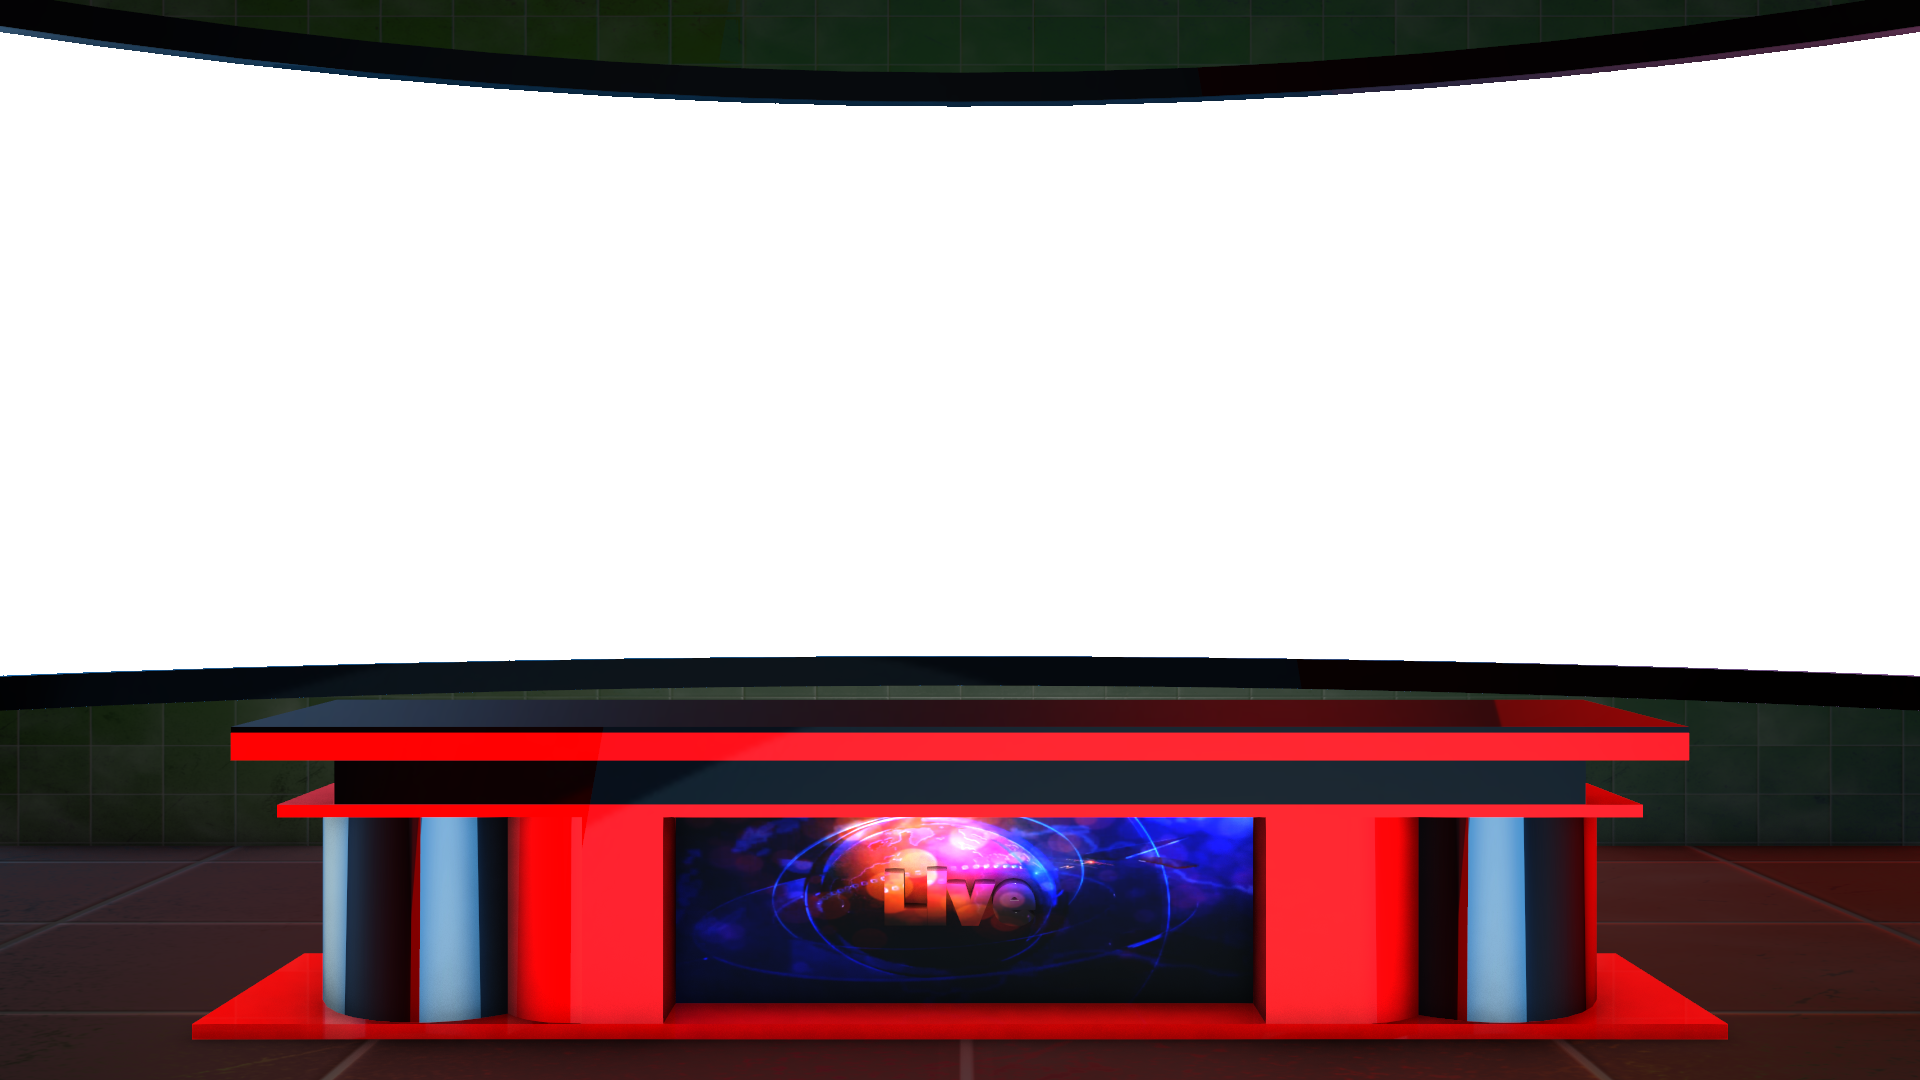 Tv Studio Background Free Download High Quality Tv Studio Desk Free Png Images With 4k Quality Green Screen Videos Mtc Tutorials quality tv studio desk free png images